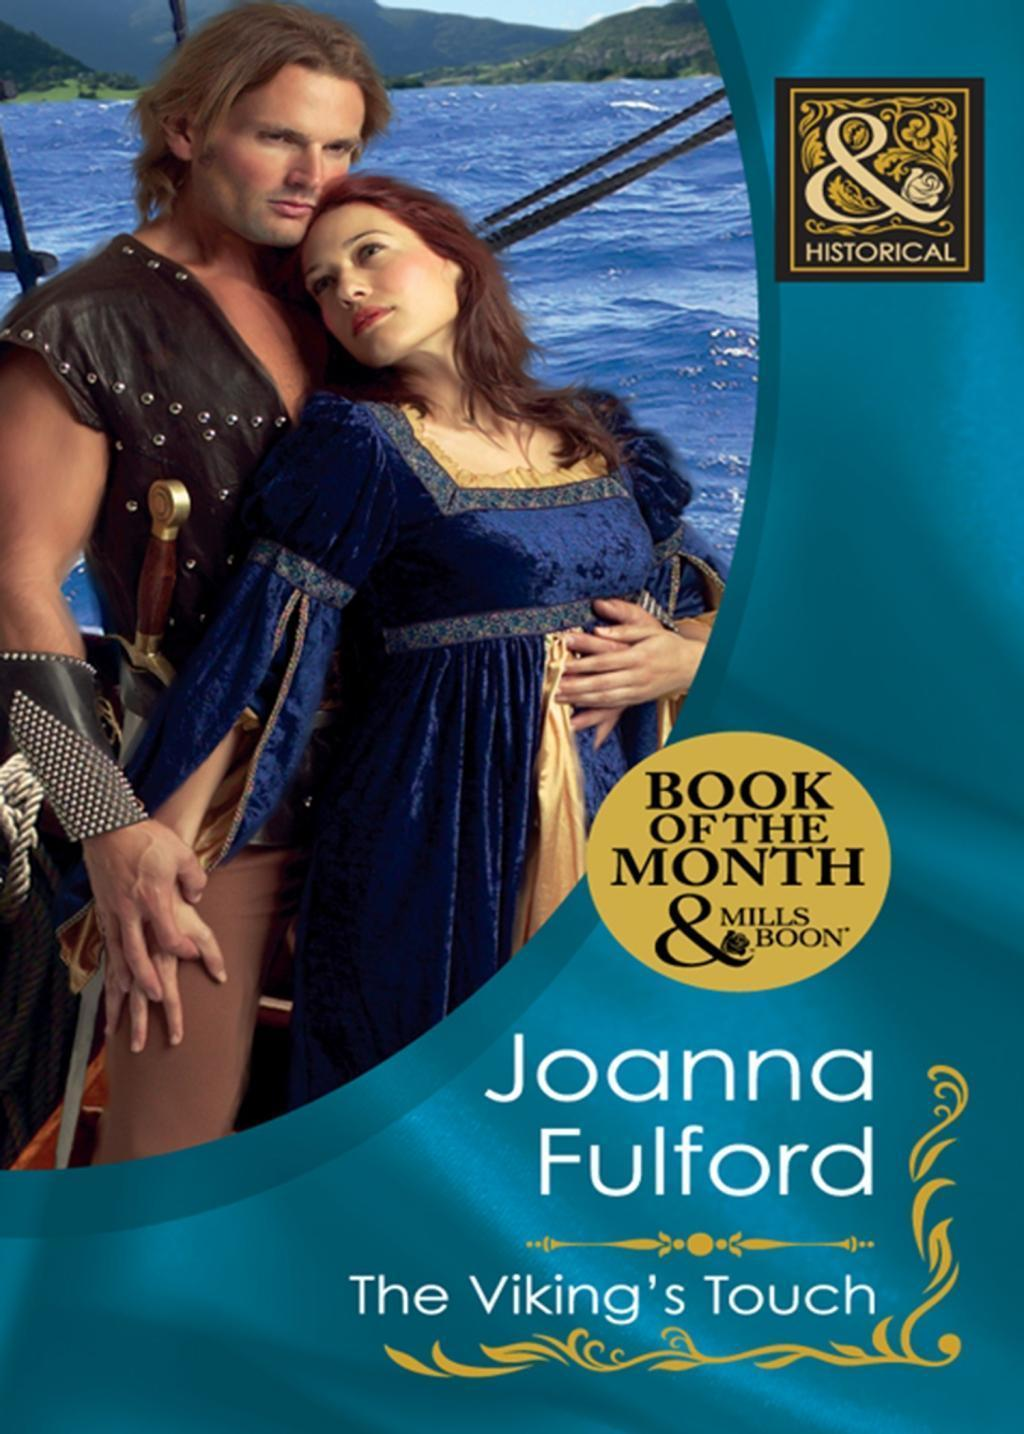 The Viking's Touch (Mills & Boon Historical)